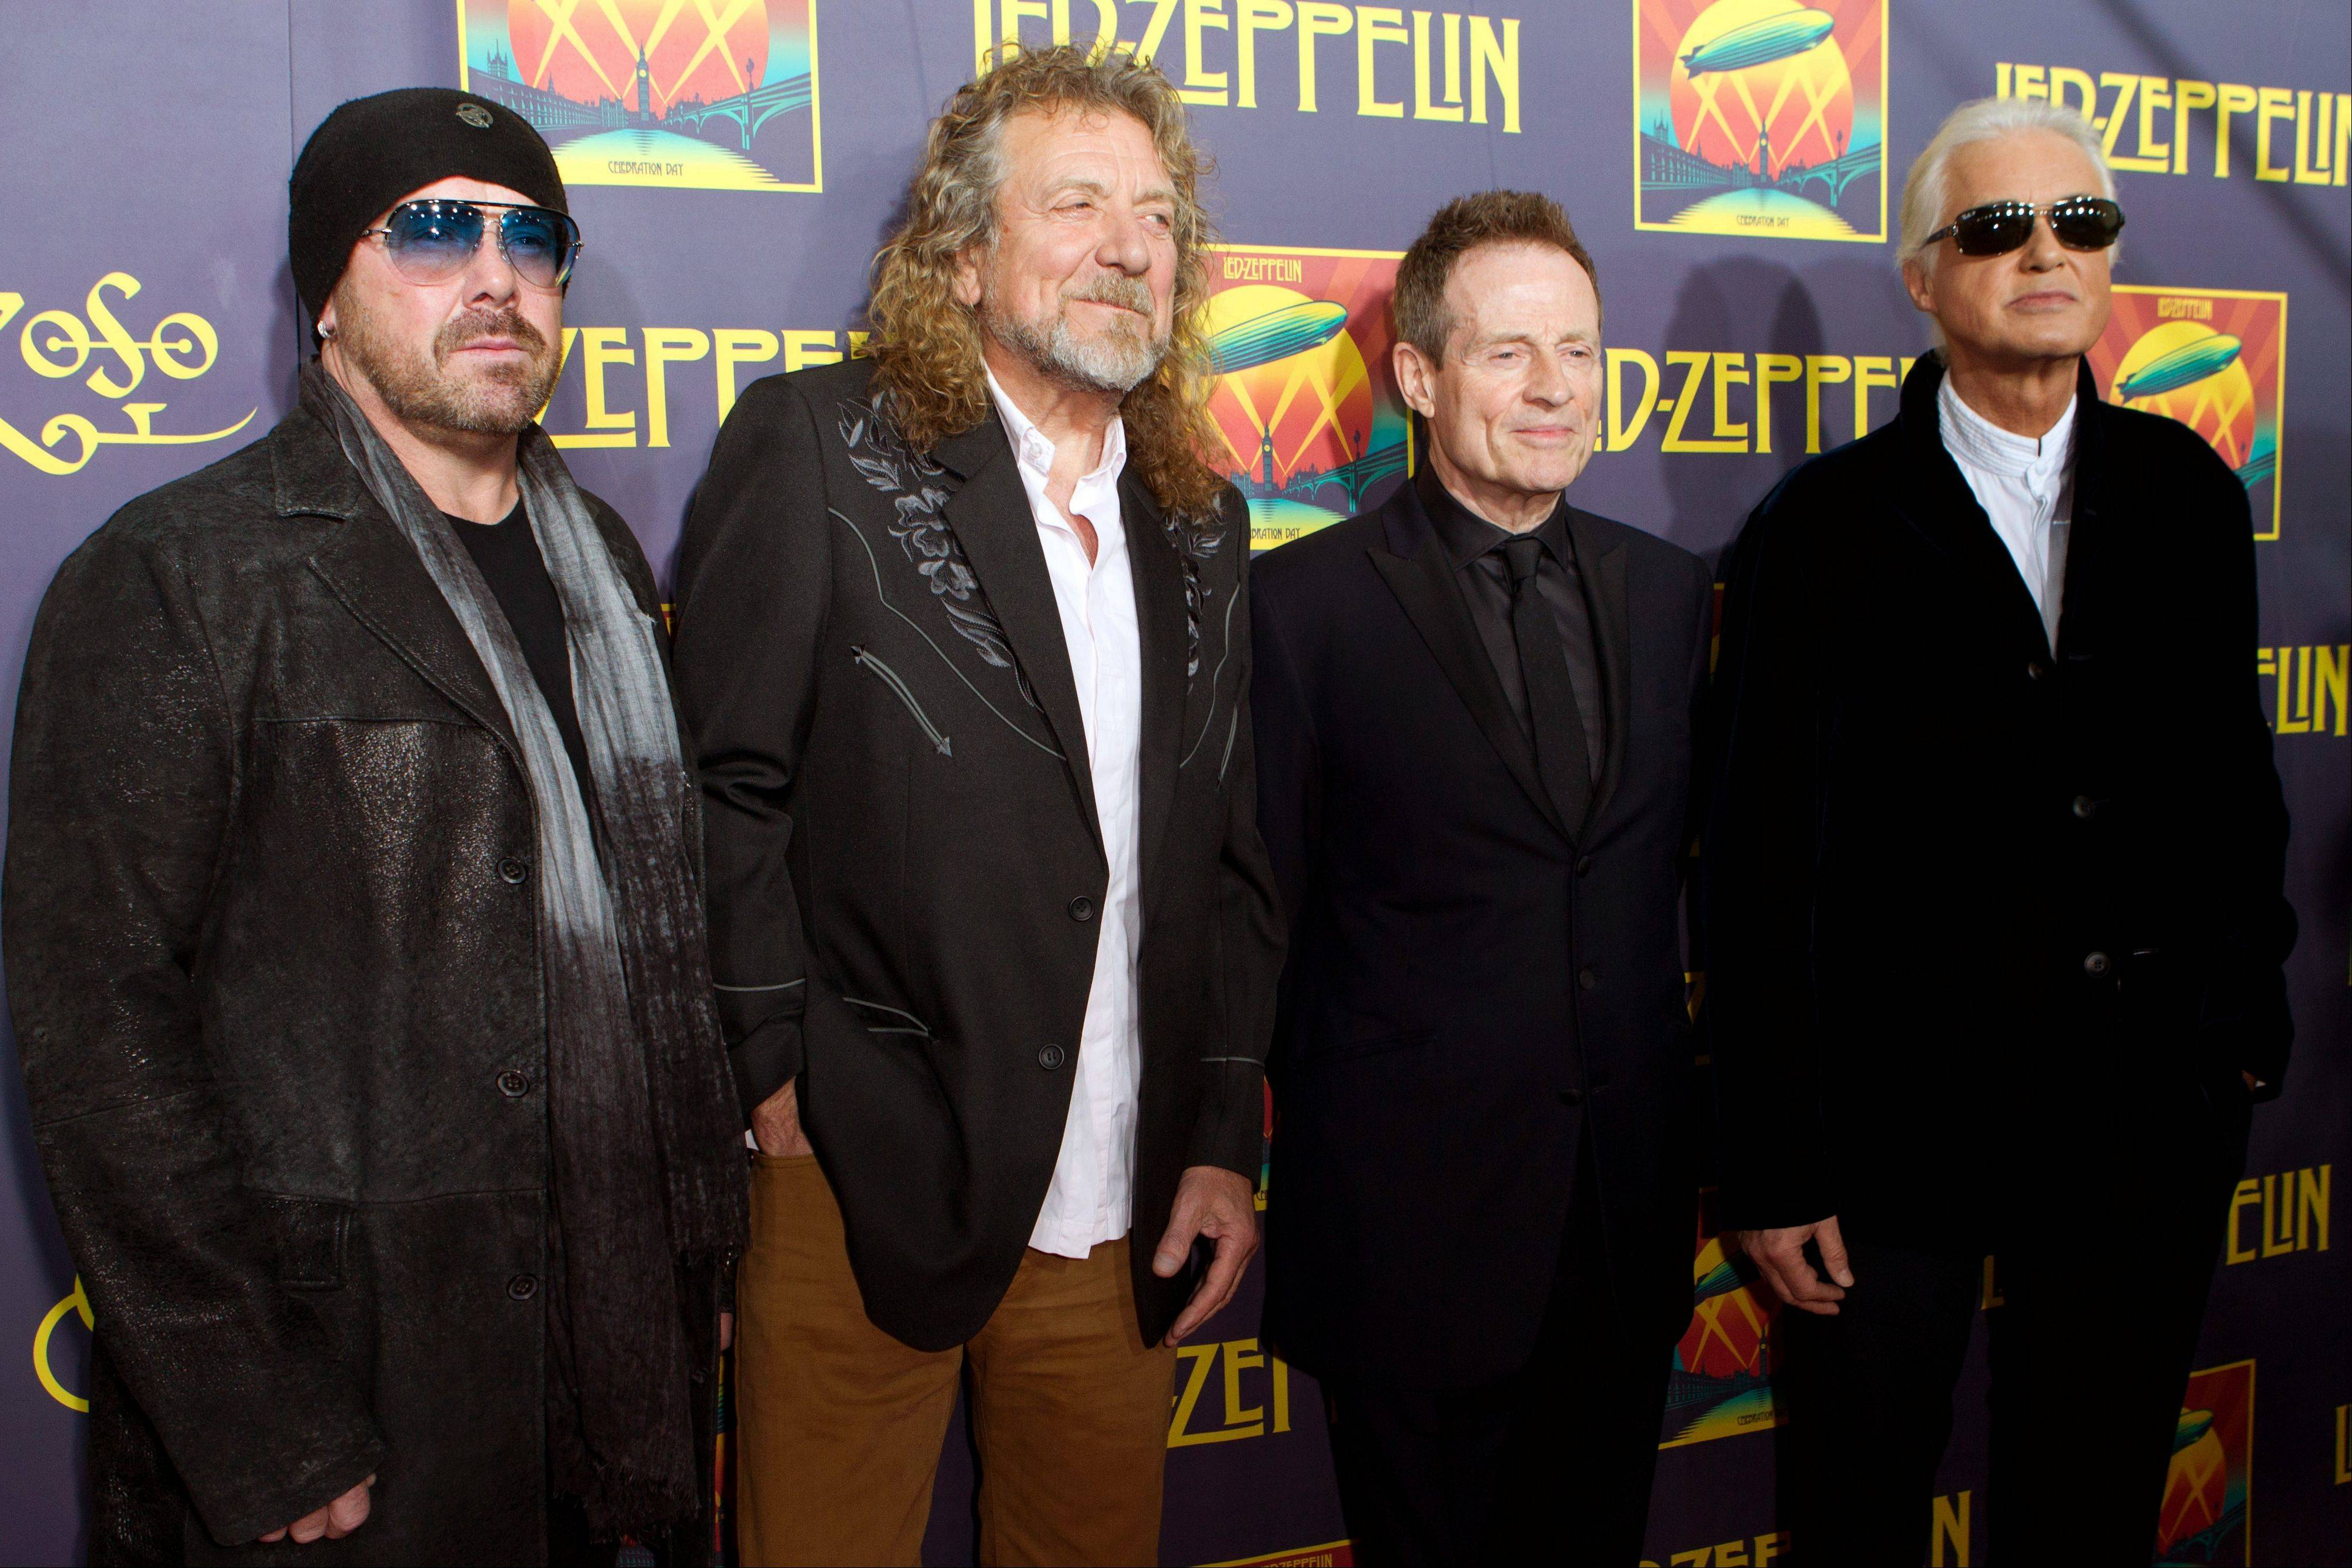 On Monday, Nov. 19, Led Zeppelin�s �Kashmir� and �Since I�ve Been Loving You� � sung by Jason Bonham, left, Robert Plant, John Paul Jones and Jimmy Page � will be featured in an episode of �Revolution,� the same day that Led Zeppelin�s �Celebration Day� album and a companion documentary on DVD will be released.